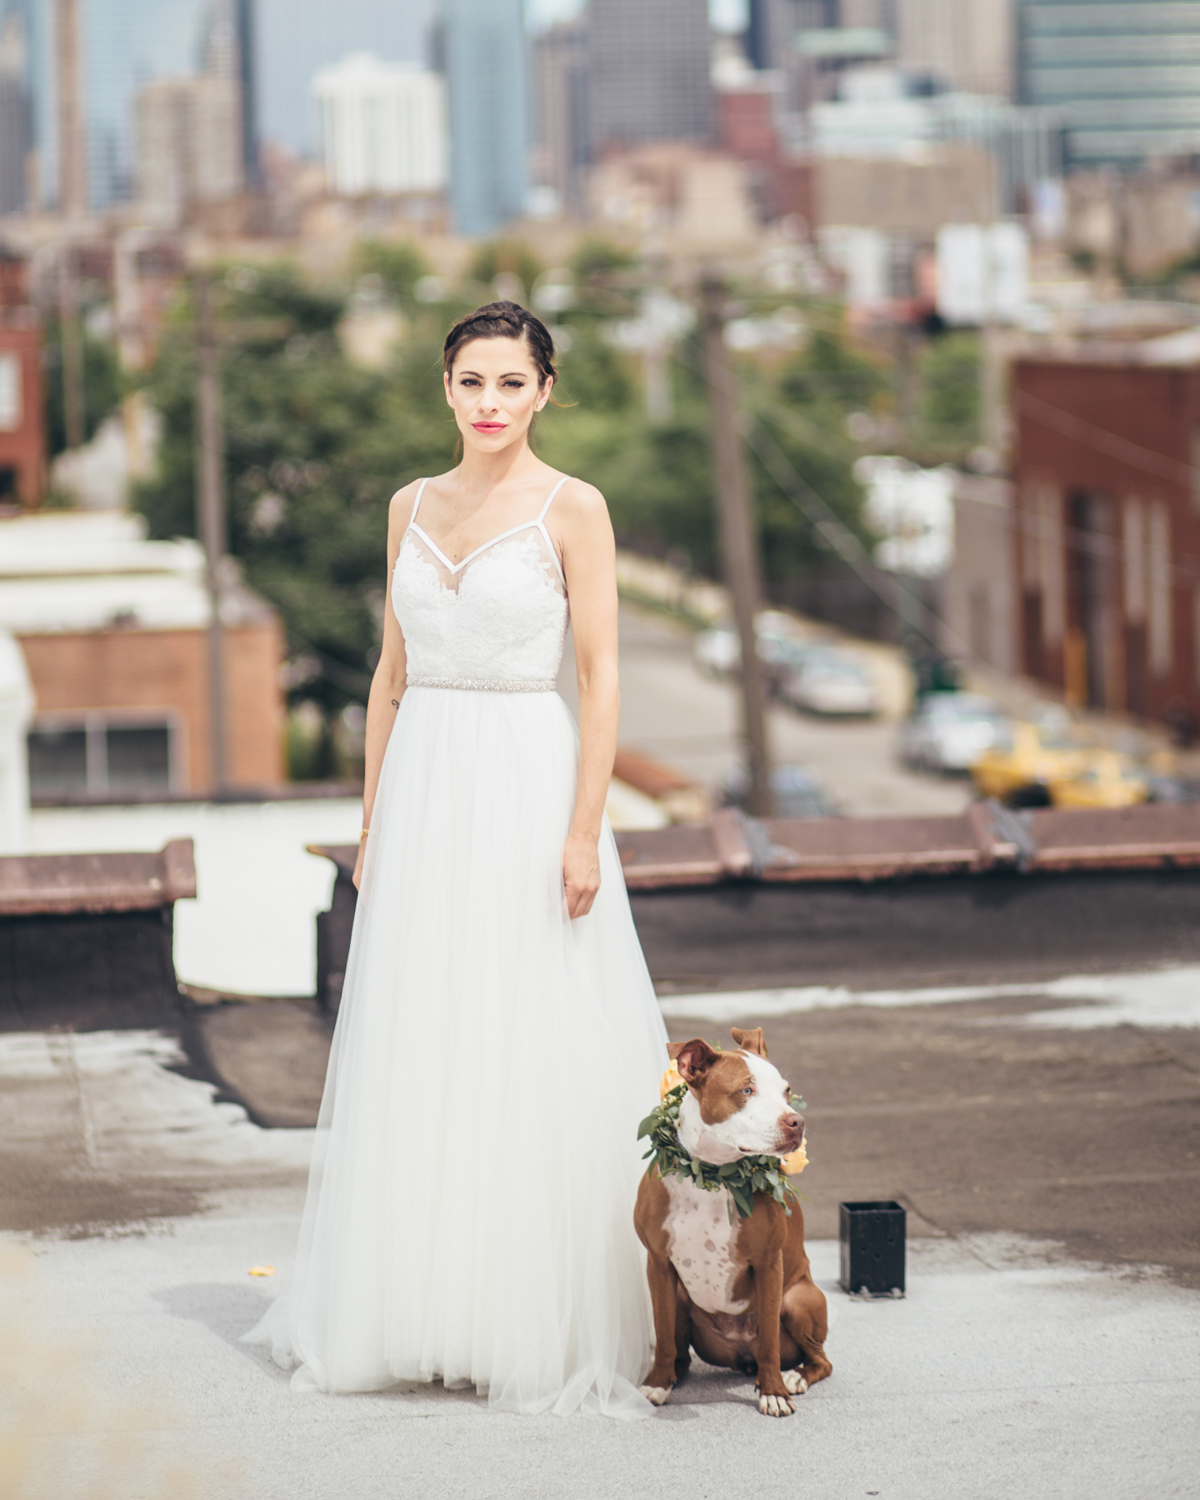 Bride with Dog on Chicago Rooftop